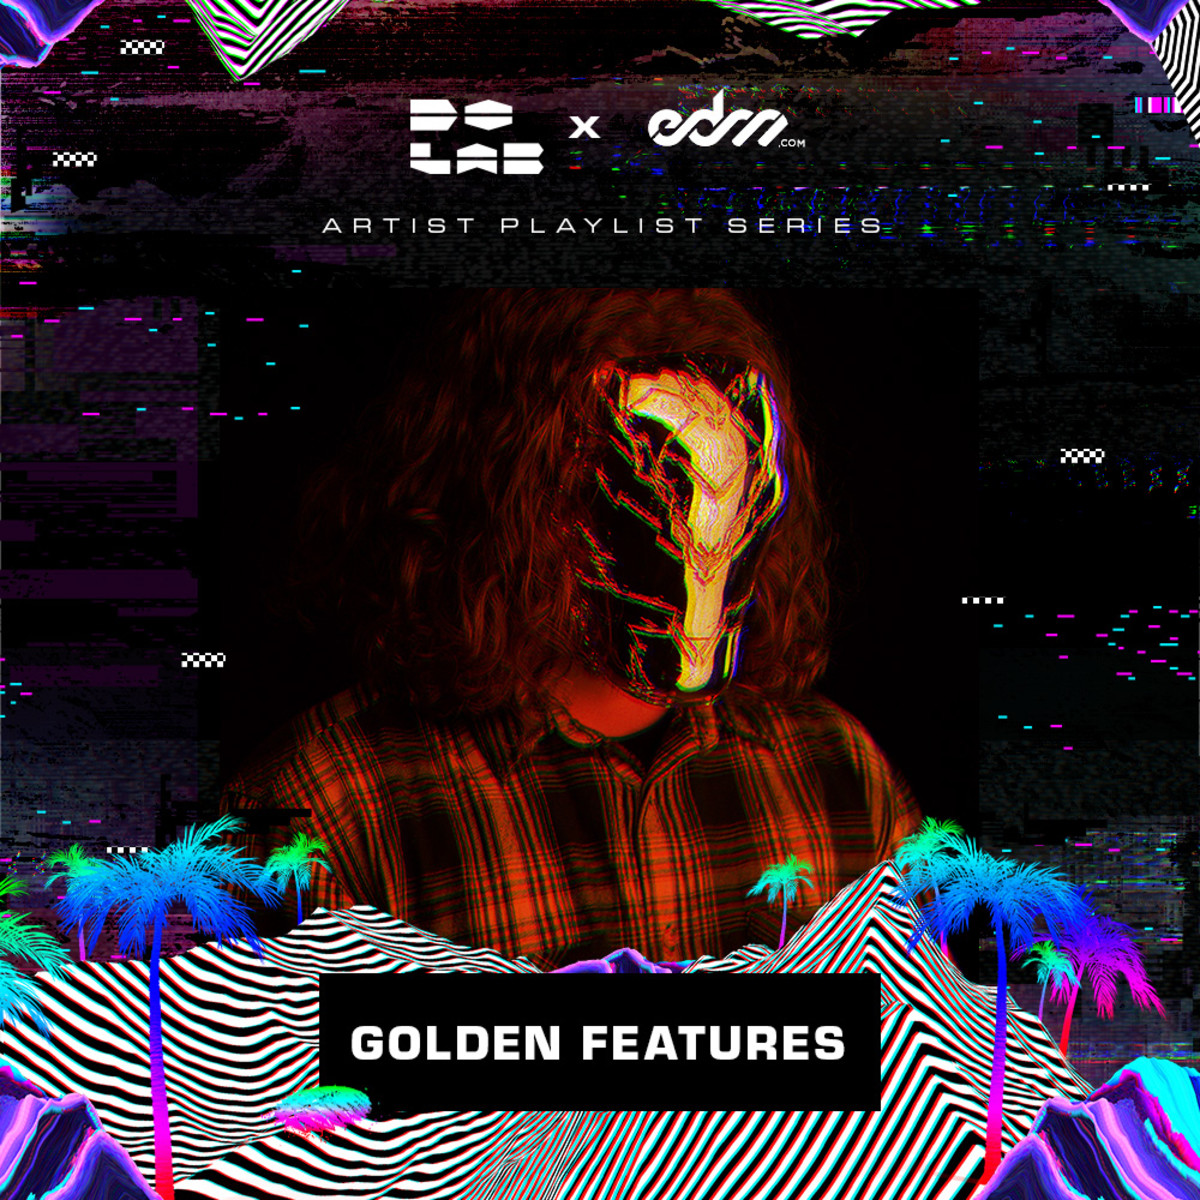 Coachella 2019 Artist Playlist - Golden Features 1000x1000